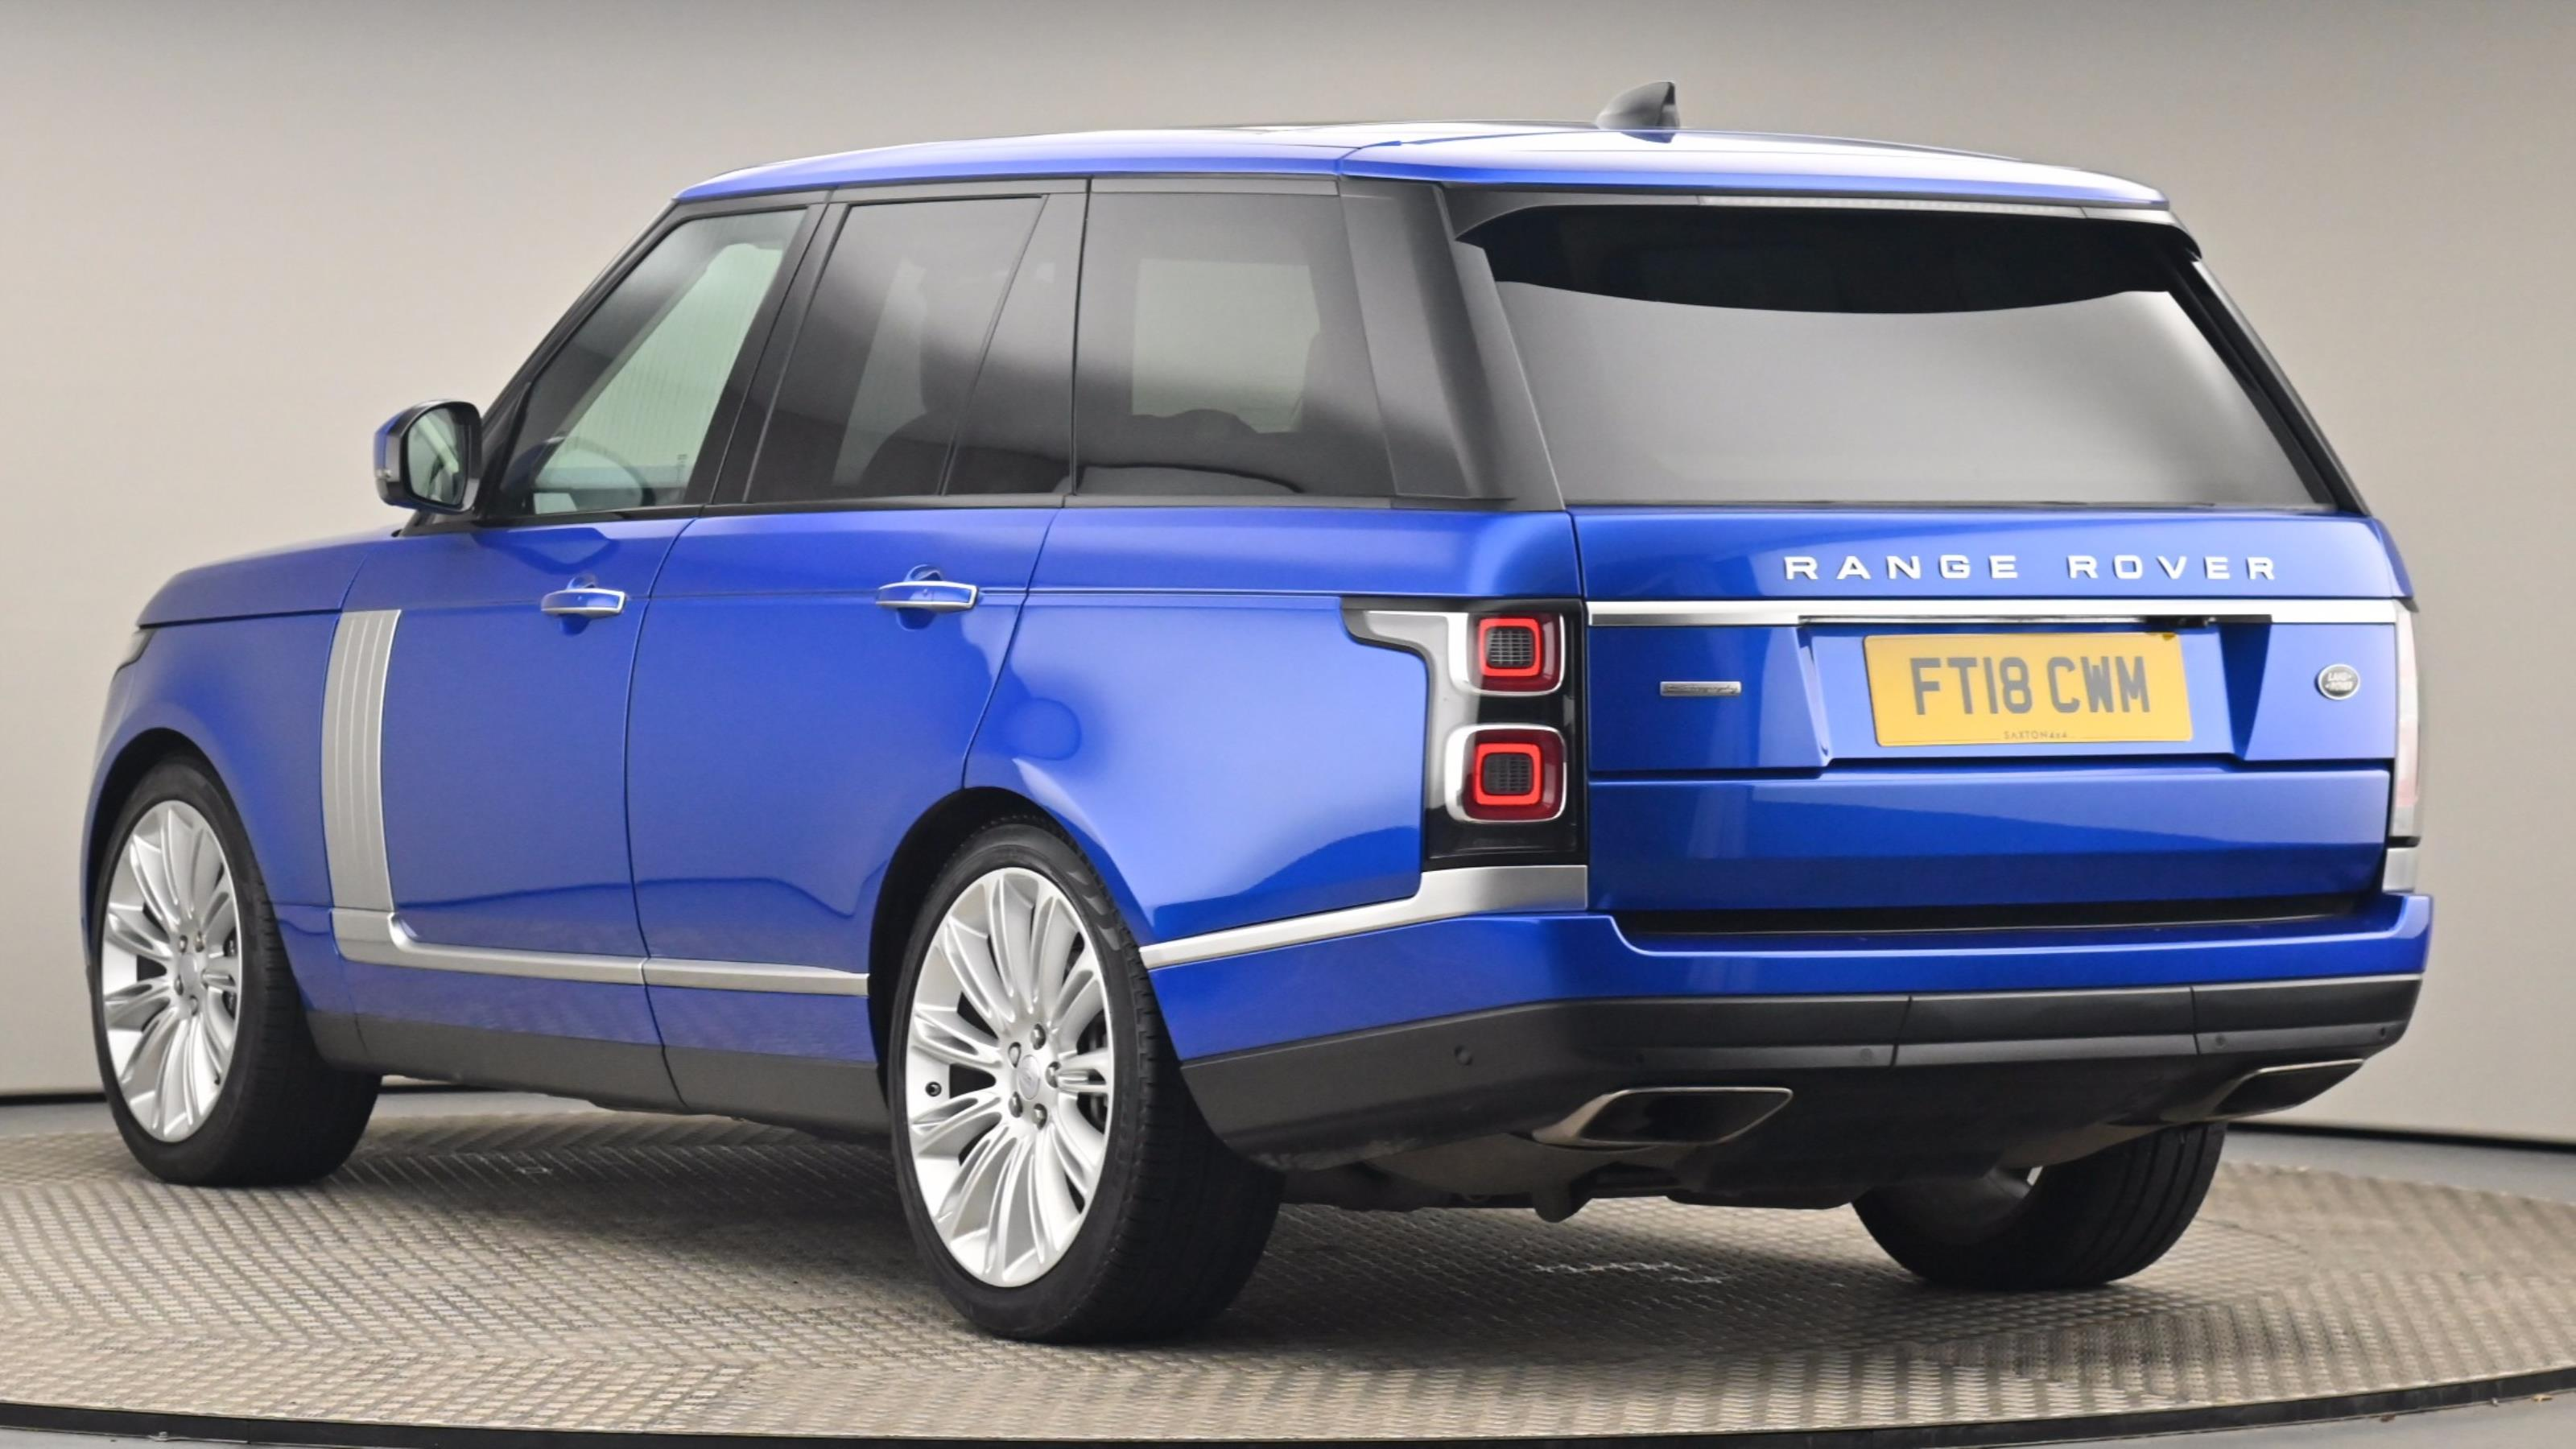 Used 2018 Land Rover RANGE ROVER 4.4 SDV8 Autobiography 4dr Auto BLUE at Saxton4x4